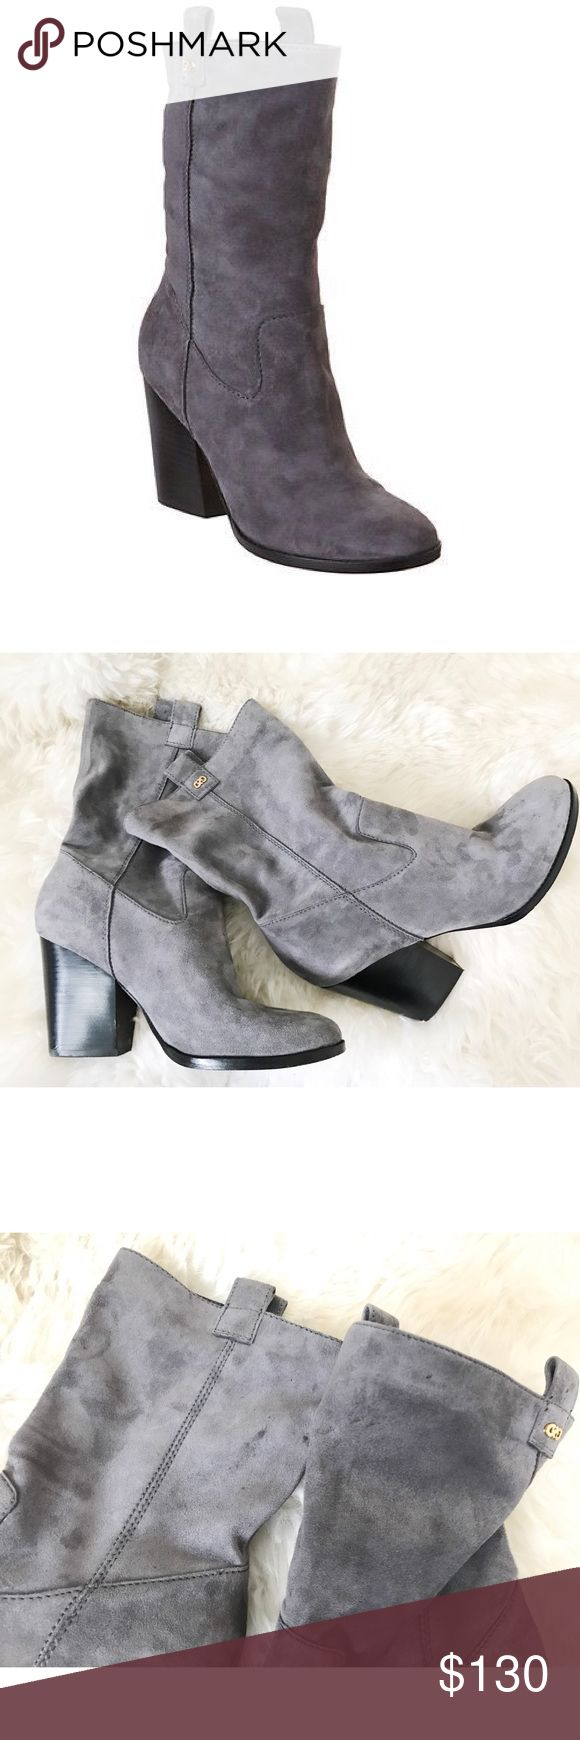 Cole Haan Nightingale Slouchy Suede Bootie Cole Haan grey slouchy suede bootie! Super cute and excellent condition! A few tiny, minor dark spots pictured! Soles and heel in excellent condition! Lovely boot! Offers welcome! Cole Haan Shoes Ankle Boots & Booties